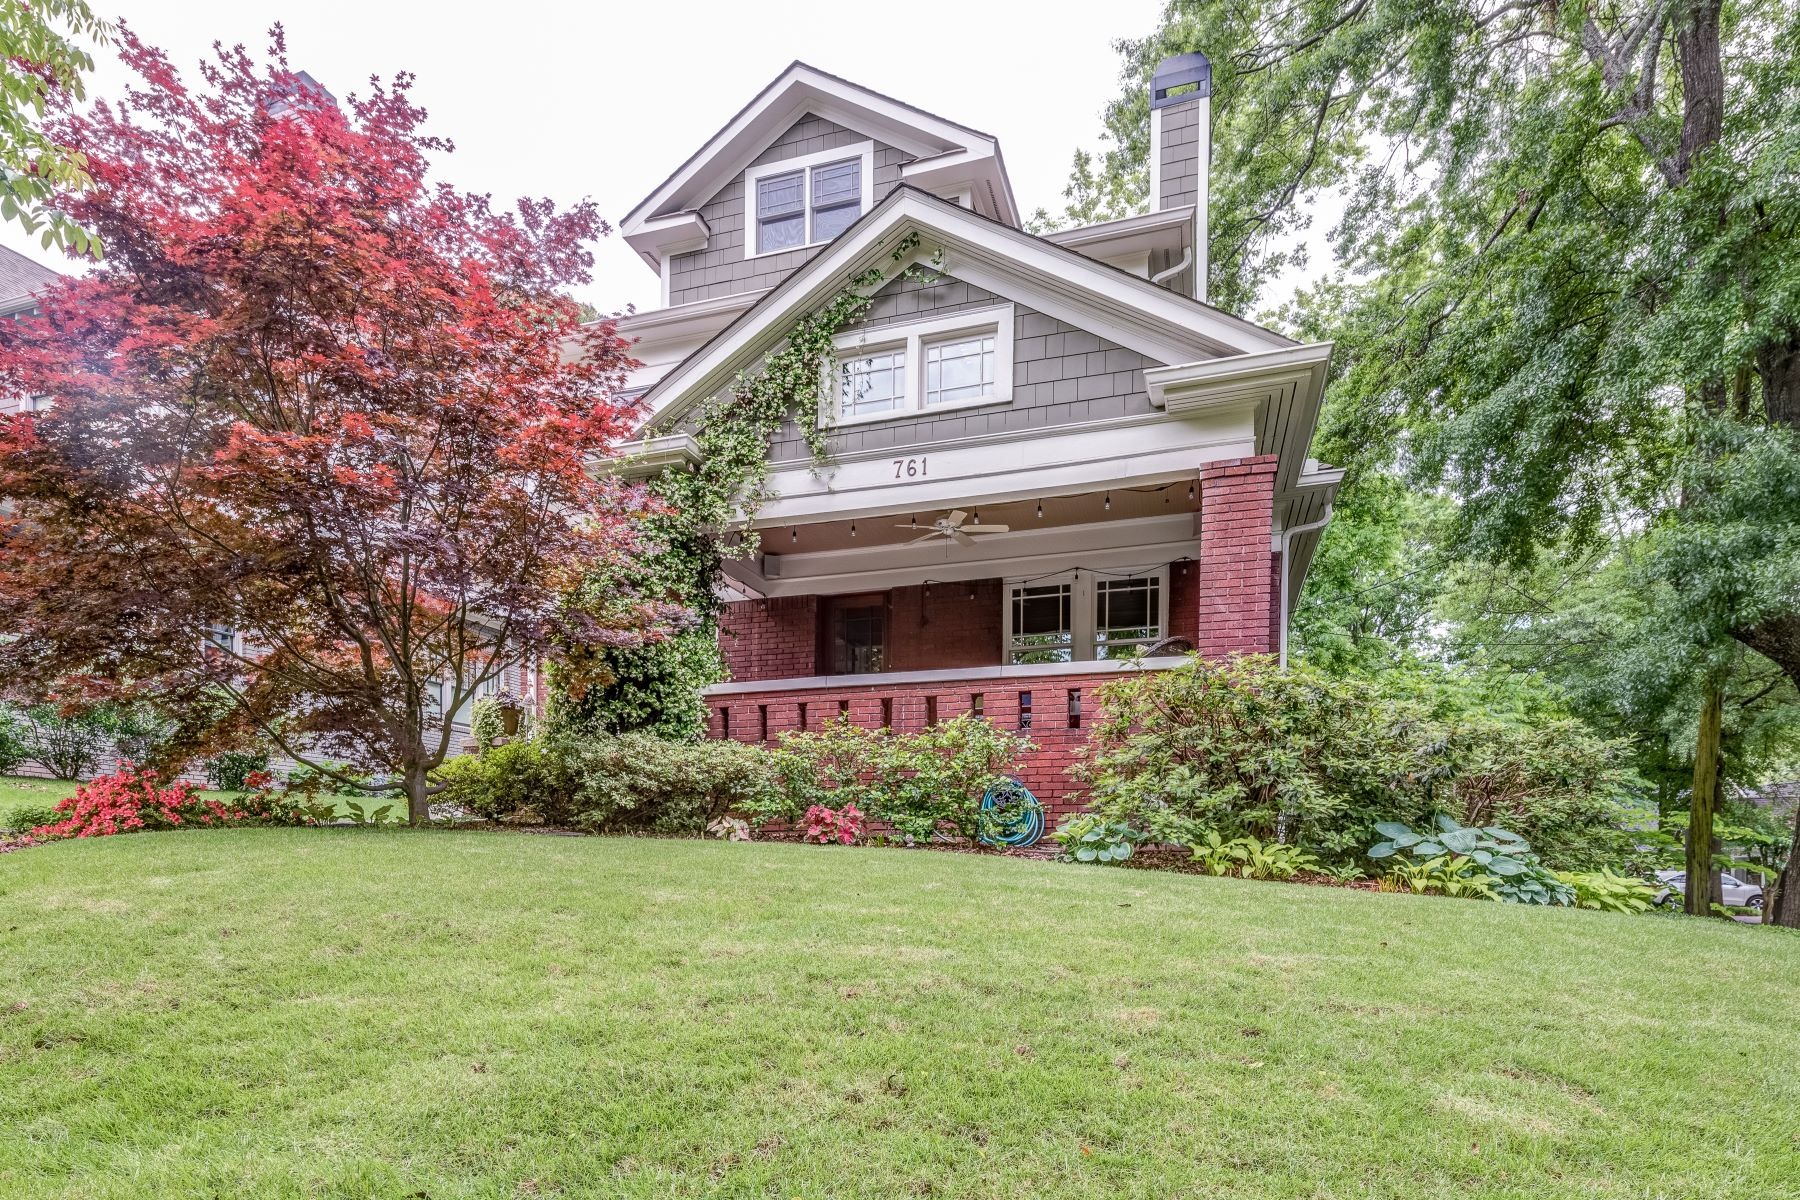 Single Family Home for Sale at Renovated Craftsman On Coveted Corner Lot With Three Spacious Living Levels 761 Virginia Cirlce Atlanta, Georgia 30306 United States